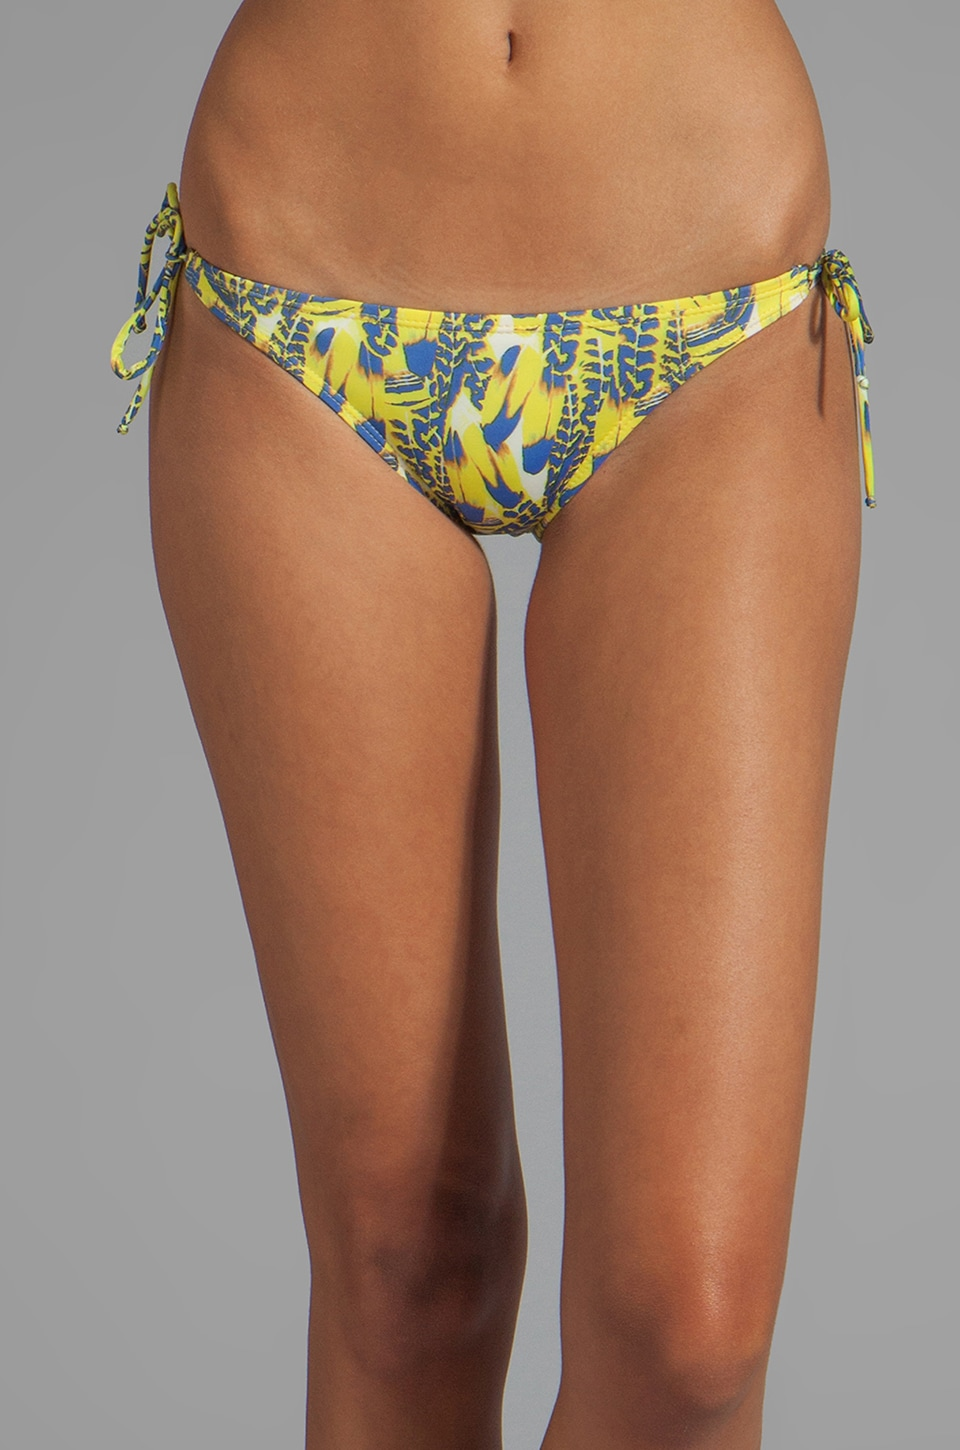 Vix Swimwear Wild Heart Long Tie Bottom in Yellow Print